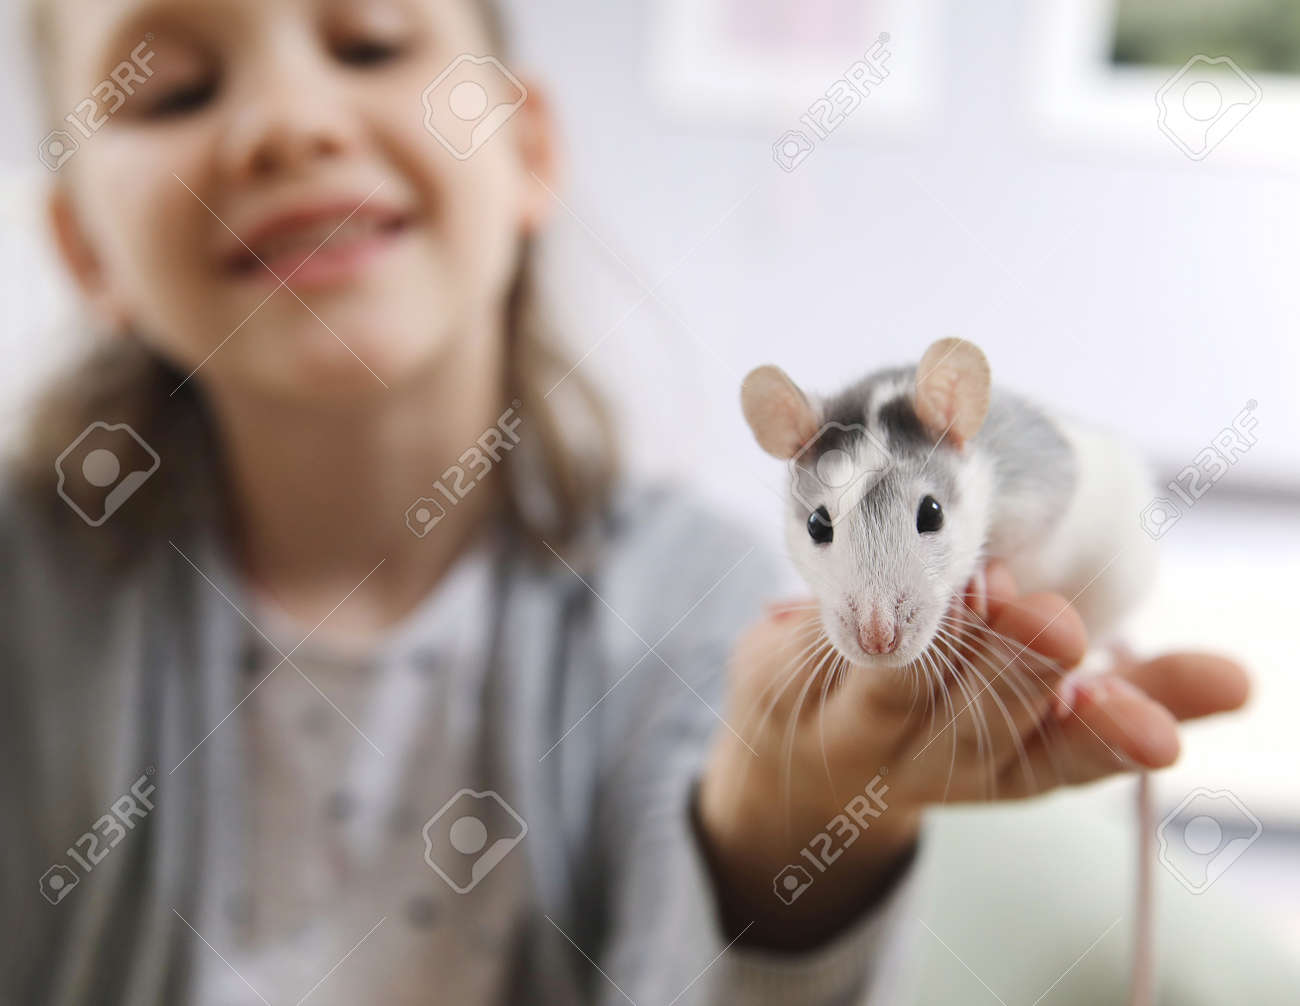 Little girl cute plays and makes friends with a white tamed mouse at home. - 167908823